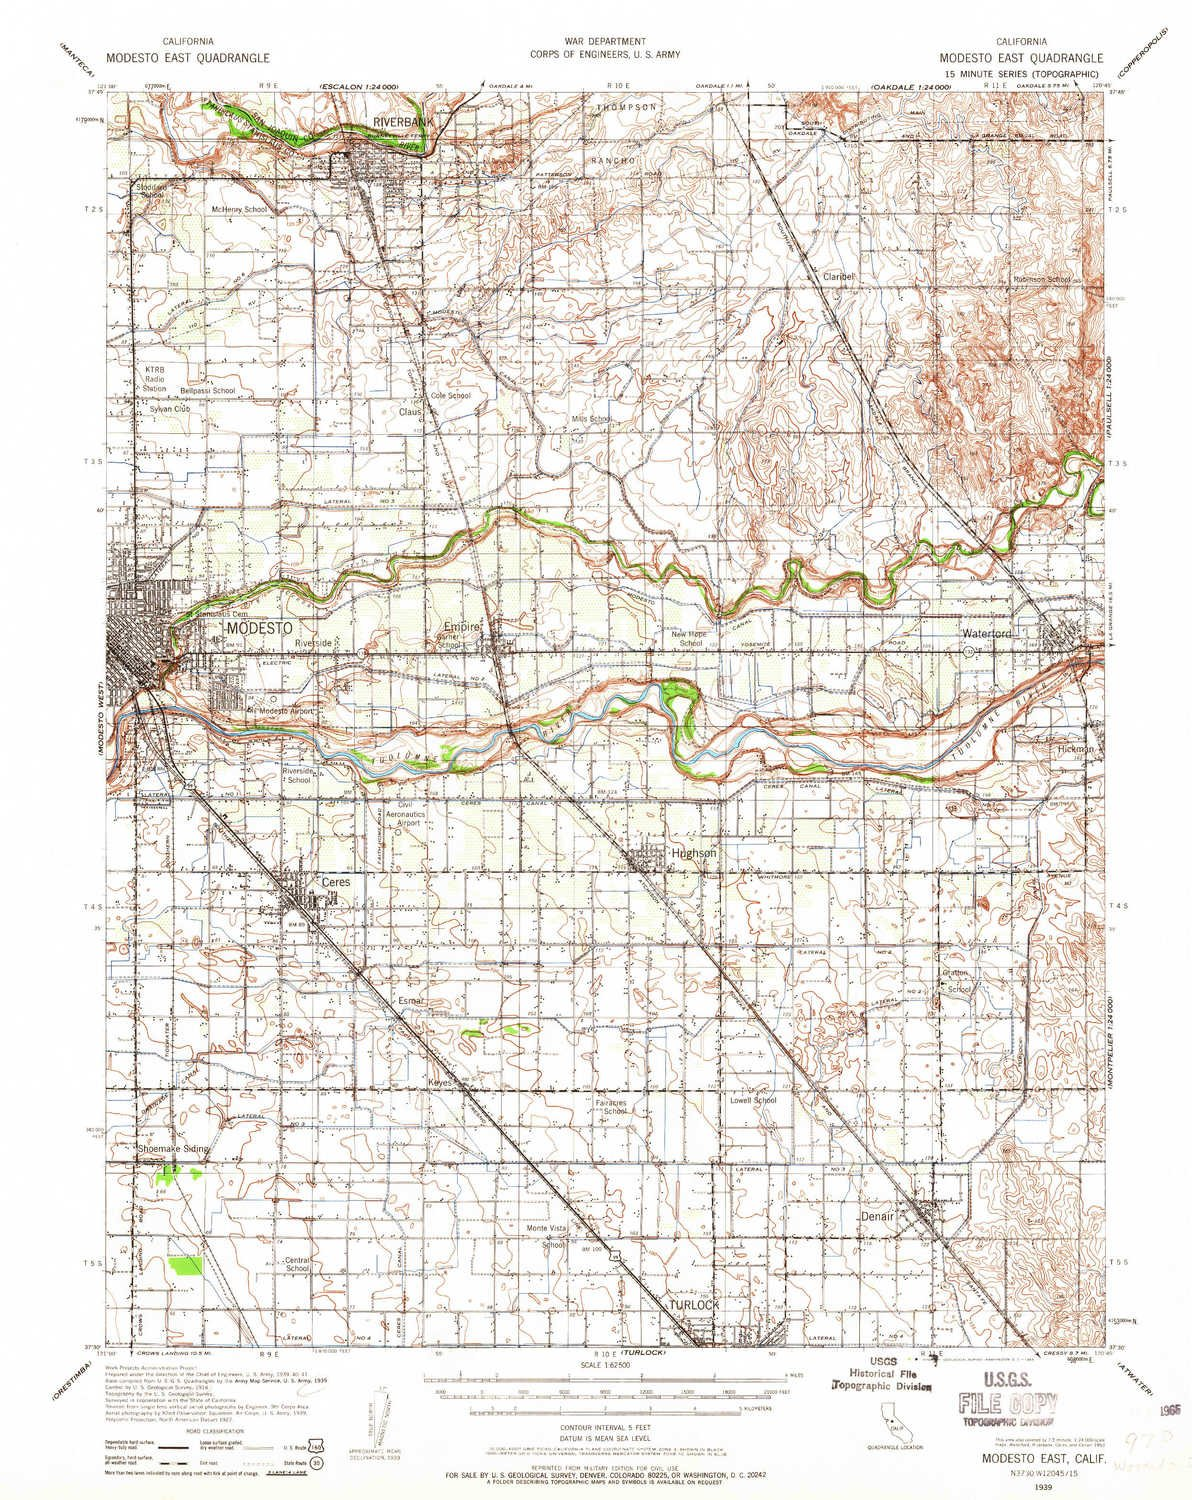 Amazon.com: YellowMaps Modesto East CA topo map, 1:62500 ... on map paso robles ca, map riverside ca, map lemoore ca, map silicon valley ca, map of modesto and surrounding cities, map fresno ca, map inland empire ca, map bakersfield ca, map of downtown modesto, map san diego ca, map ventura ca, map victorville ca, map la habra ca, map vallejo ca, map modesto calif, map pleasanton ca, map pasadena ca, map chino ca, map sacramento ca, map rialto ca,